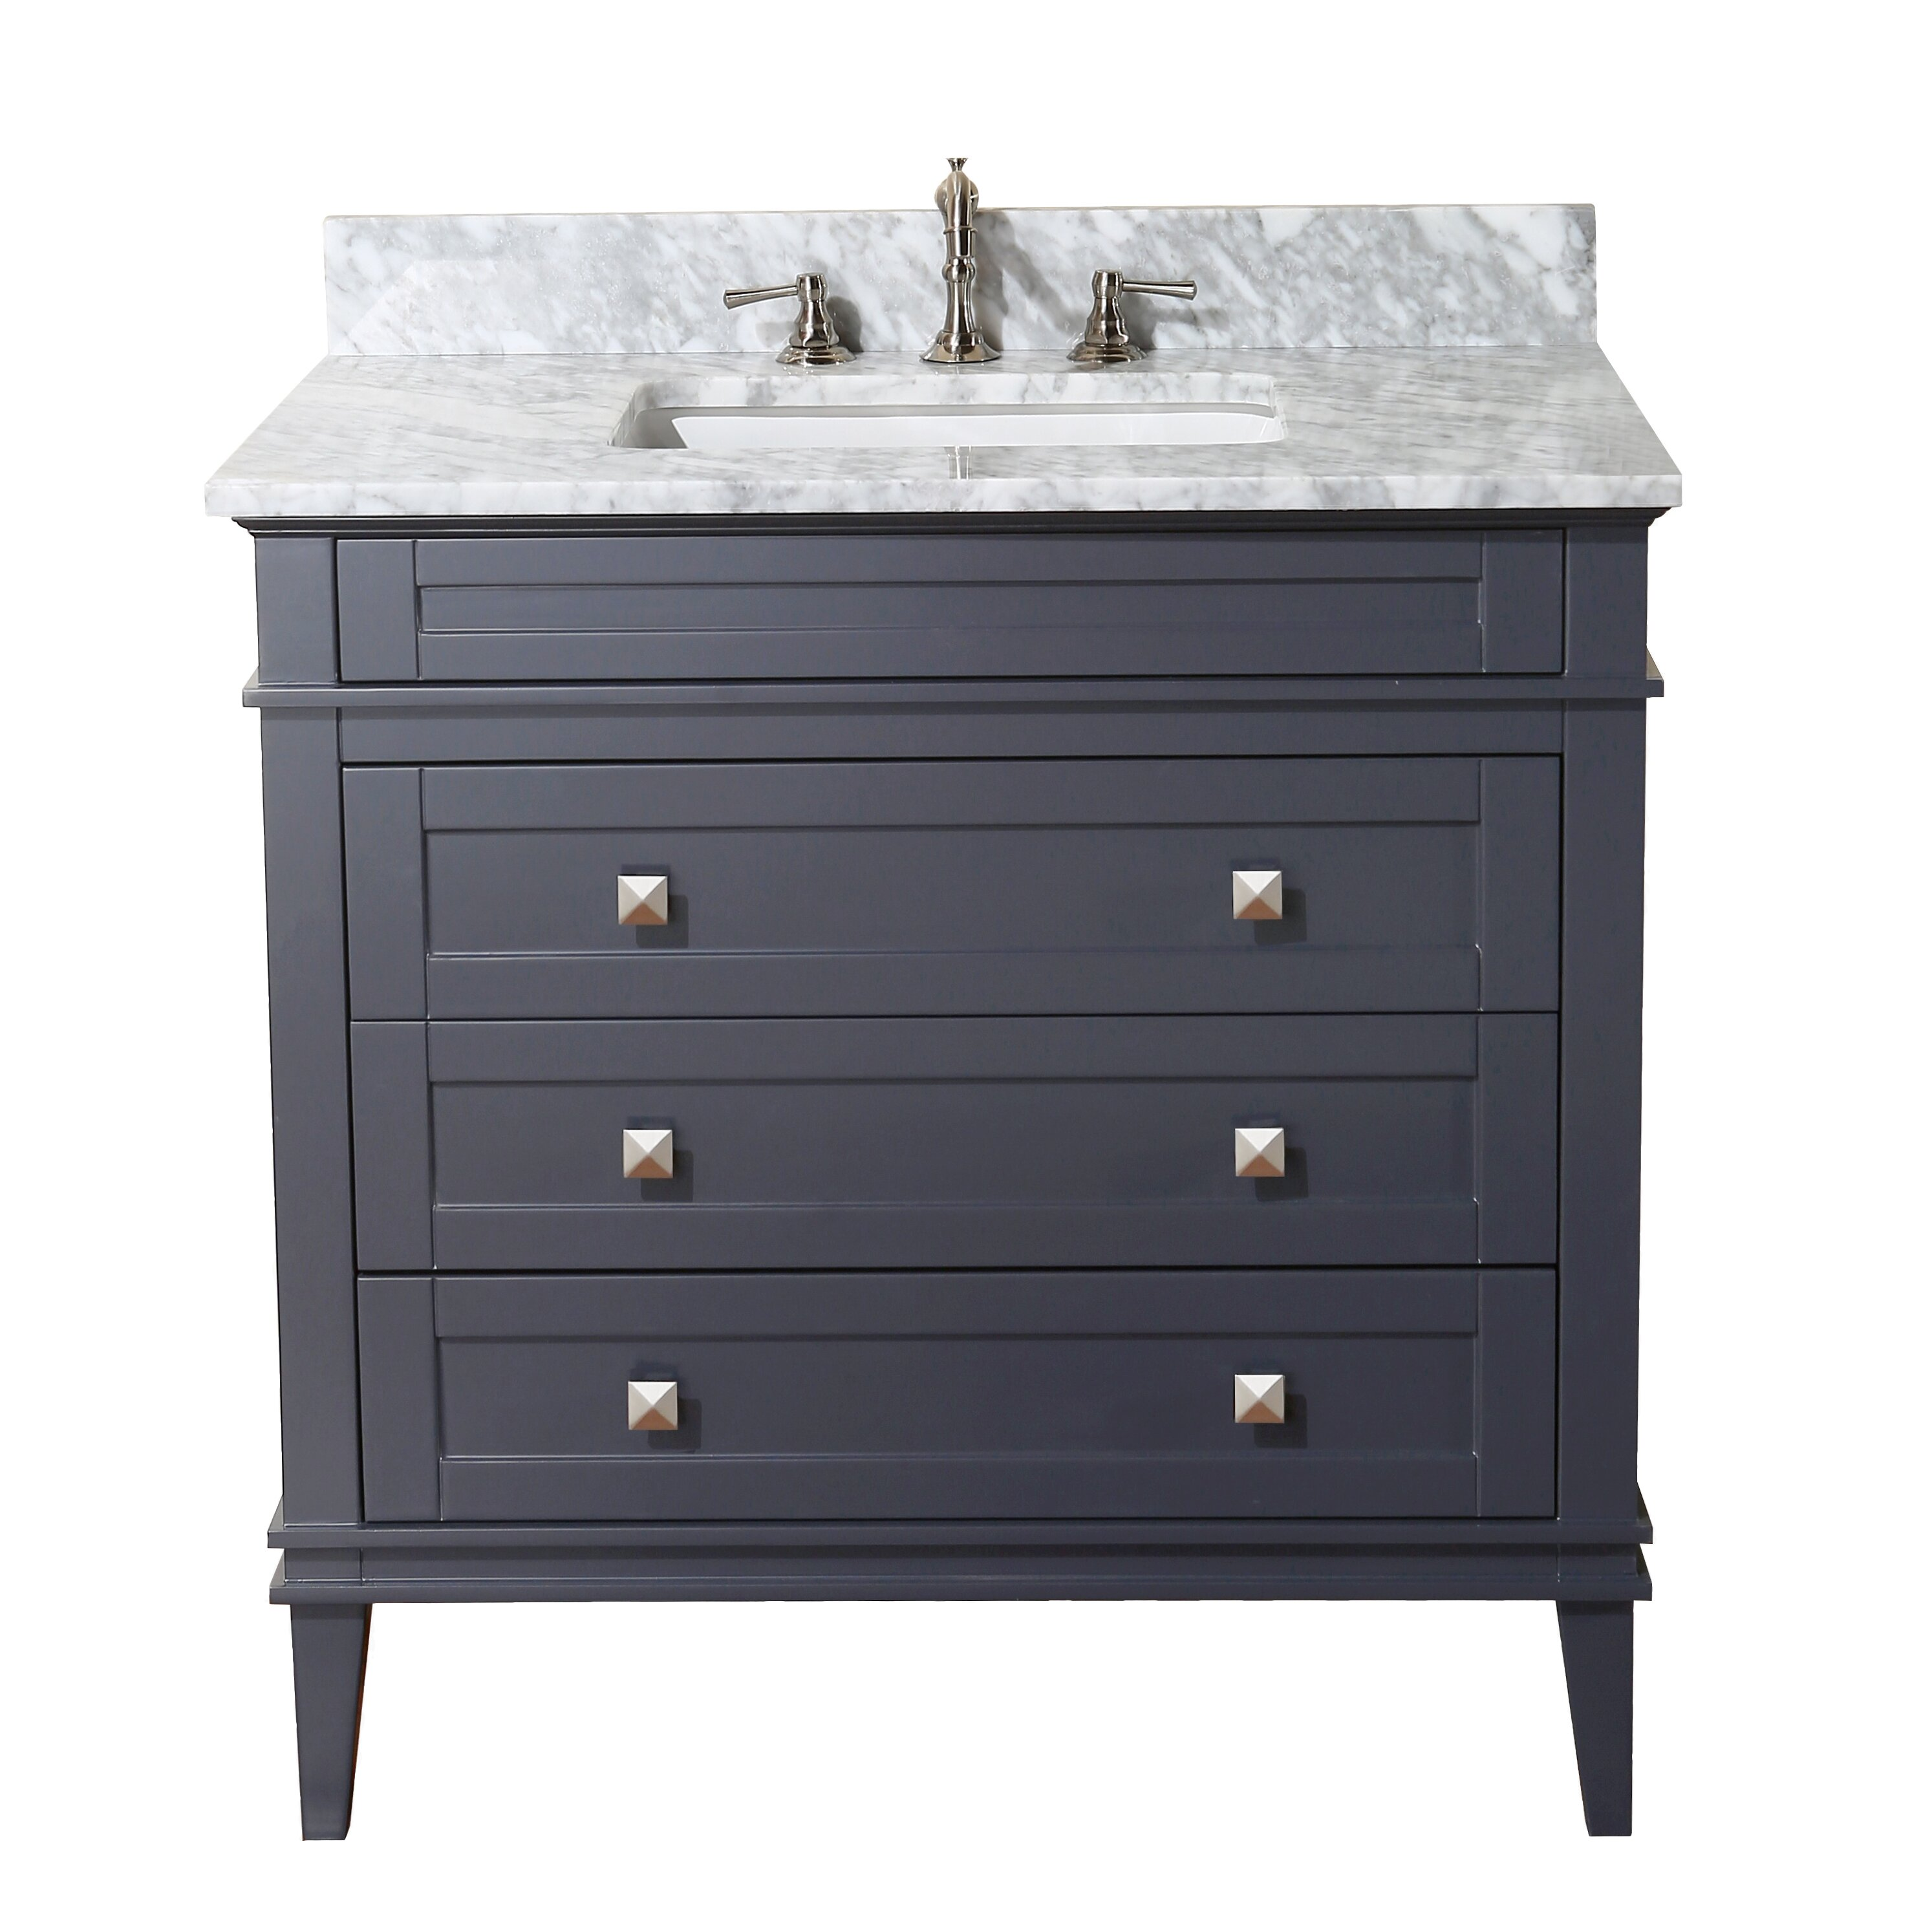 Kitchen Bath Collection Eleanor 36quot; Single Bathroom Vanity Set